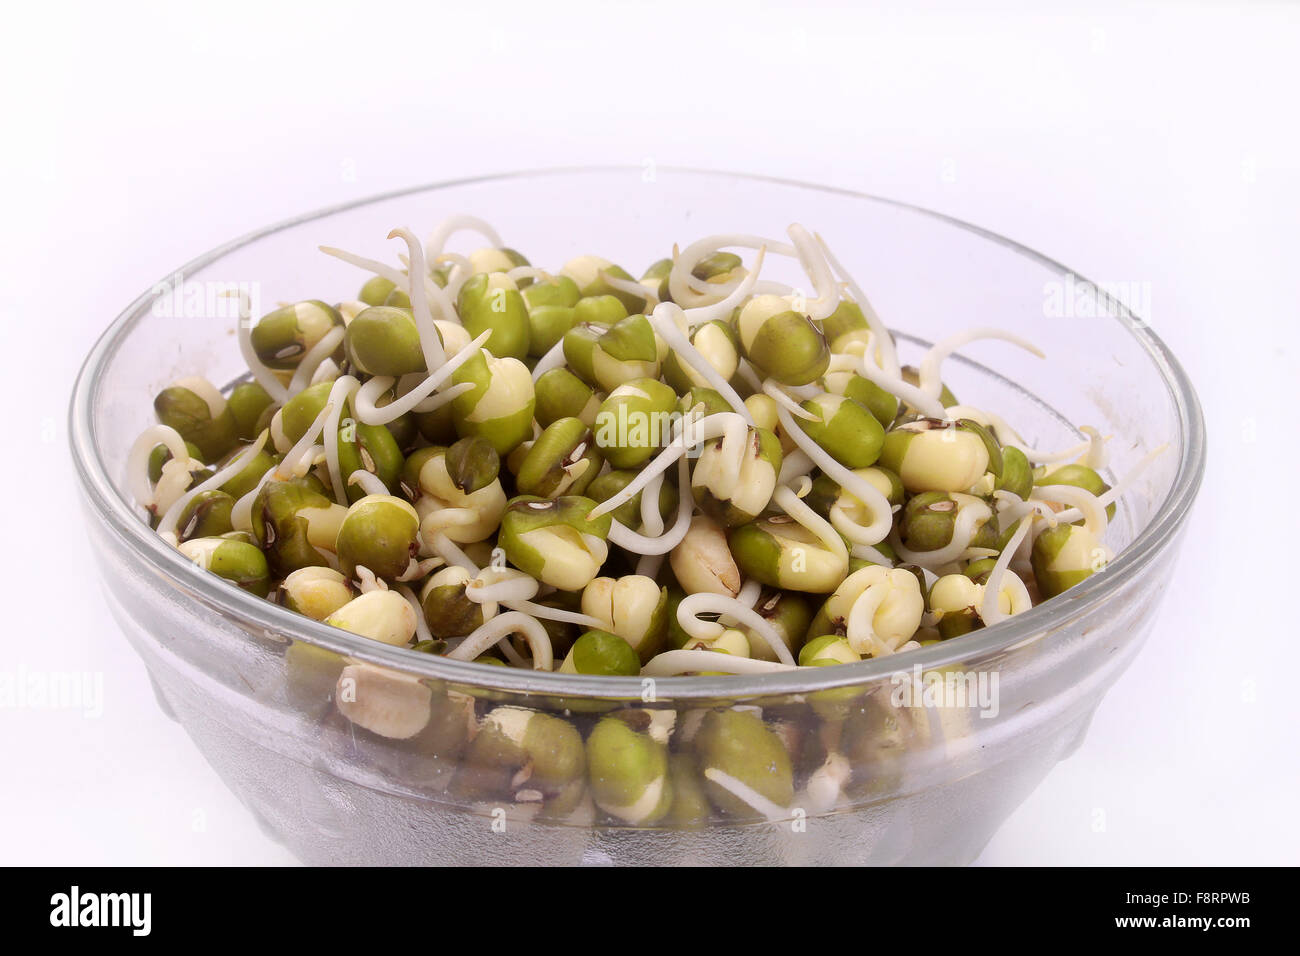 mung bean sprouts on bowl - Stock Image